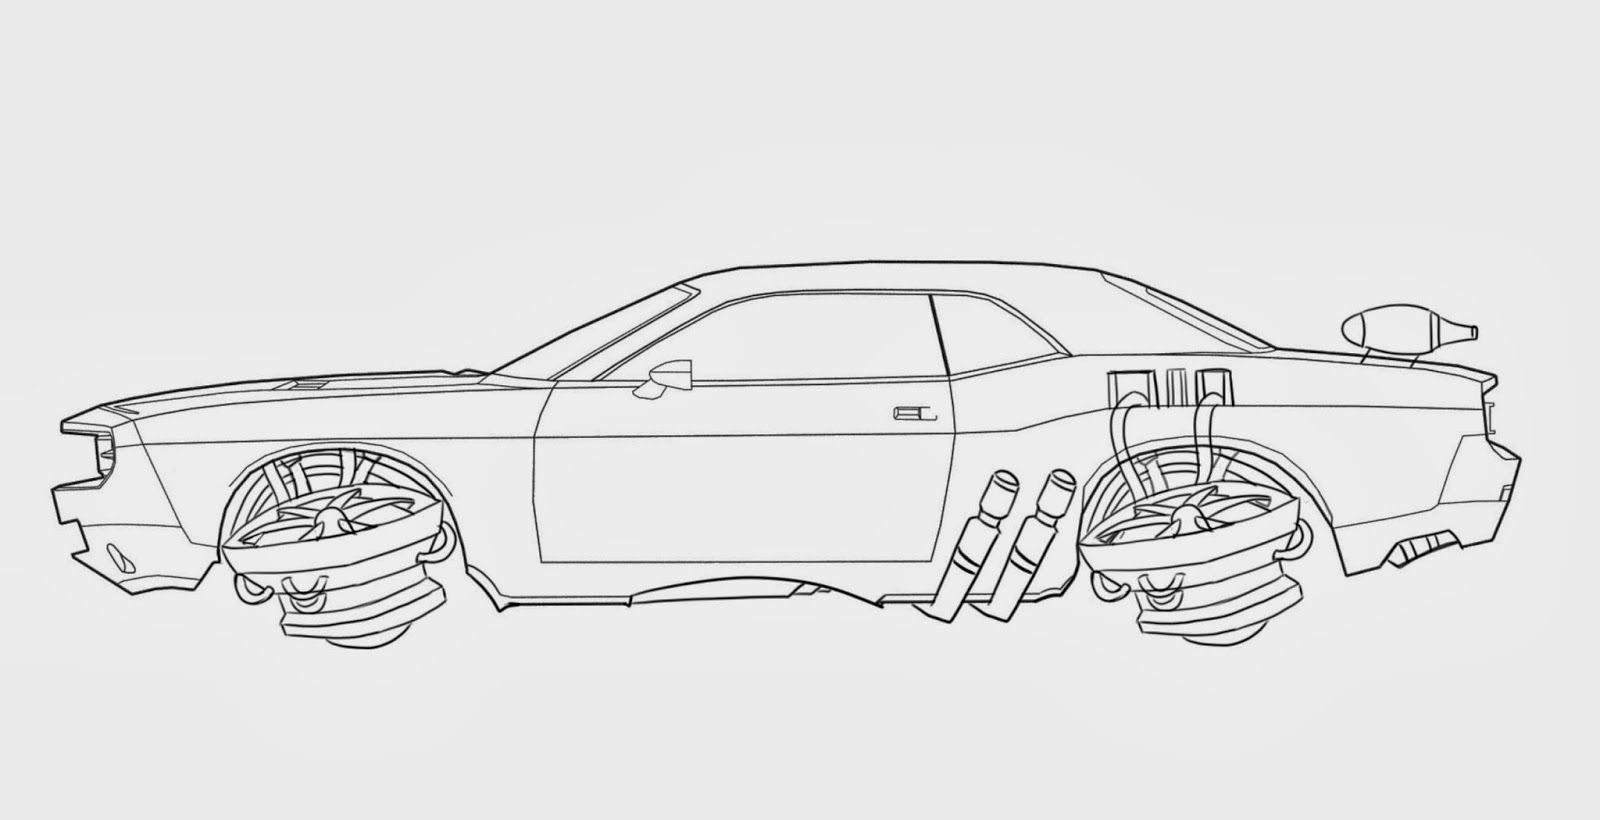 Flying Cars Of The Future Drawing Before Making The Car I